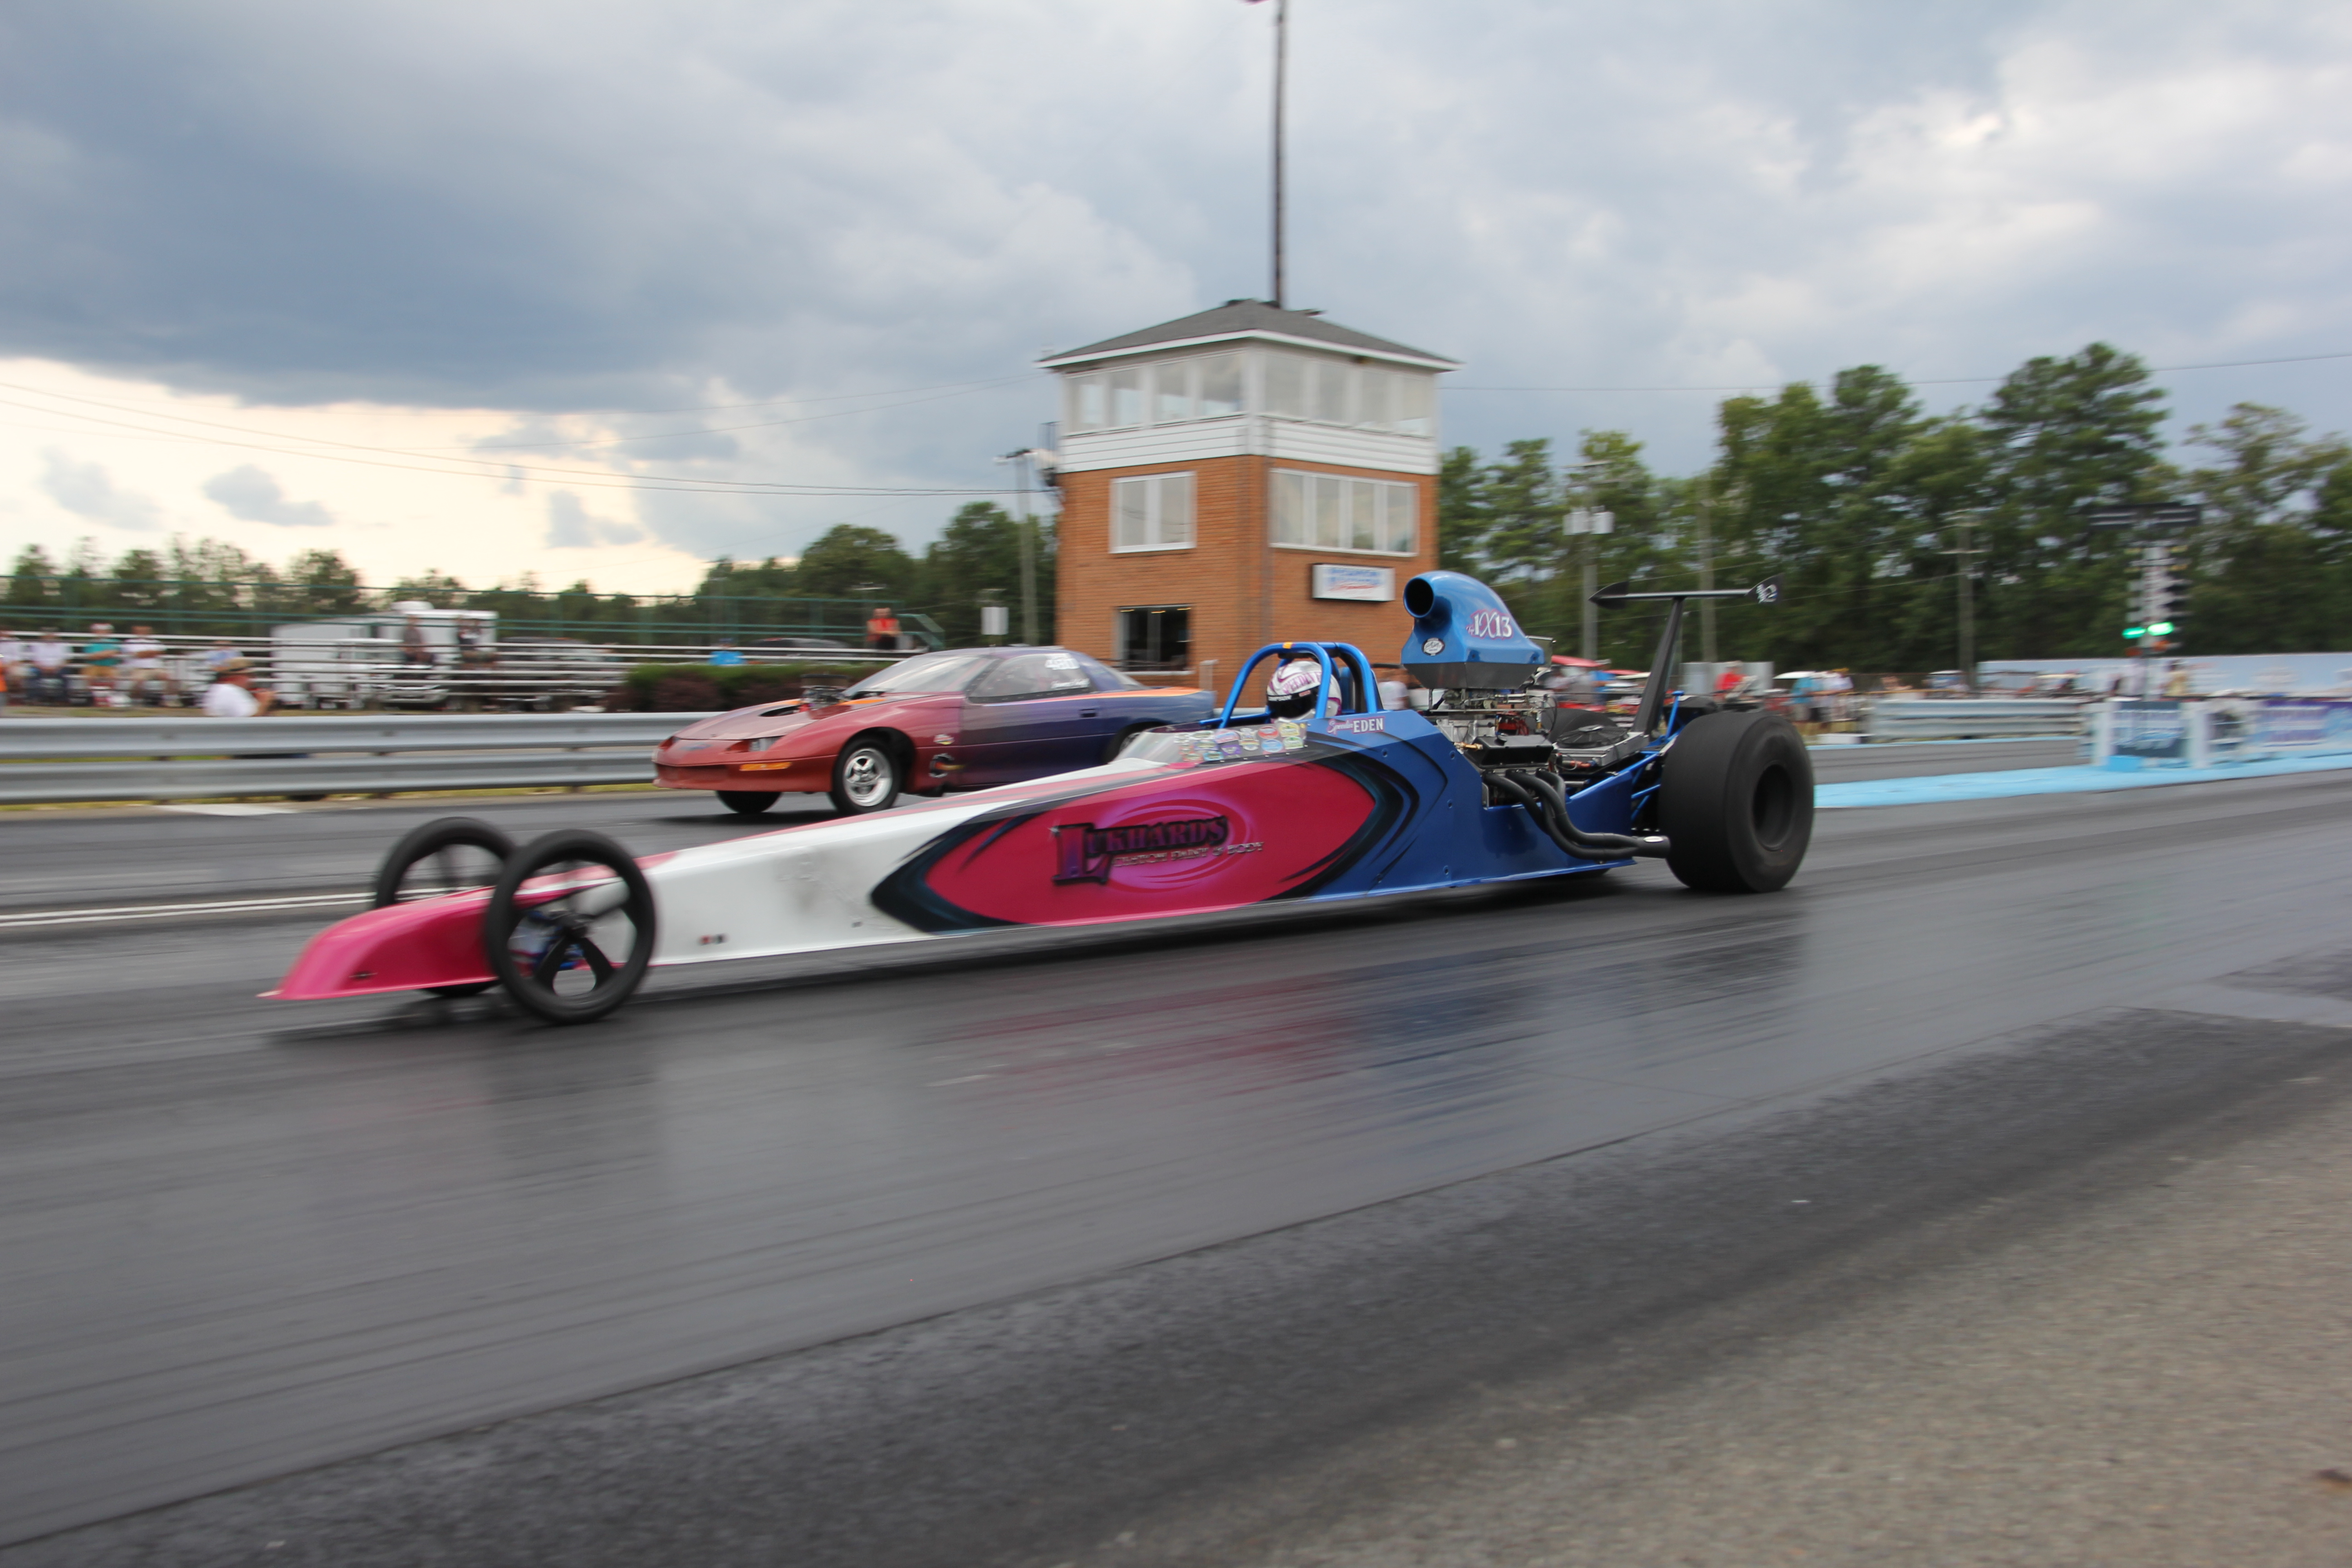 richmond dragway » this week: friday nite street fights and tnt, sat